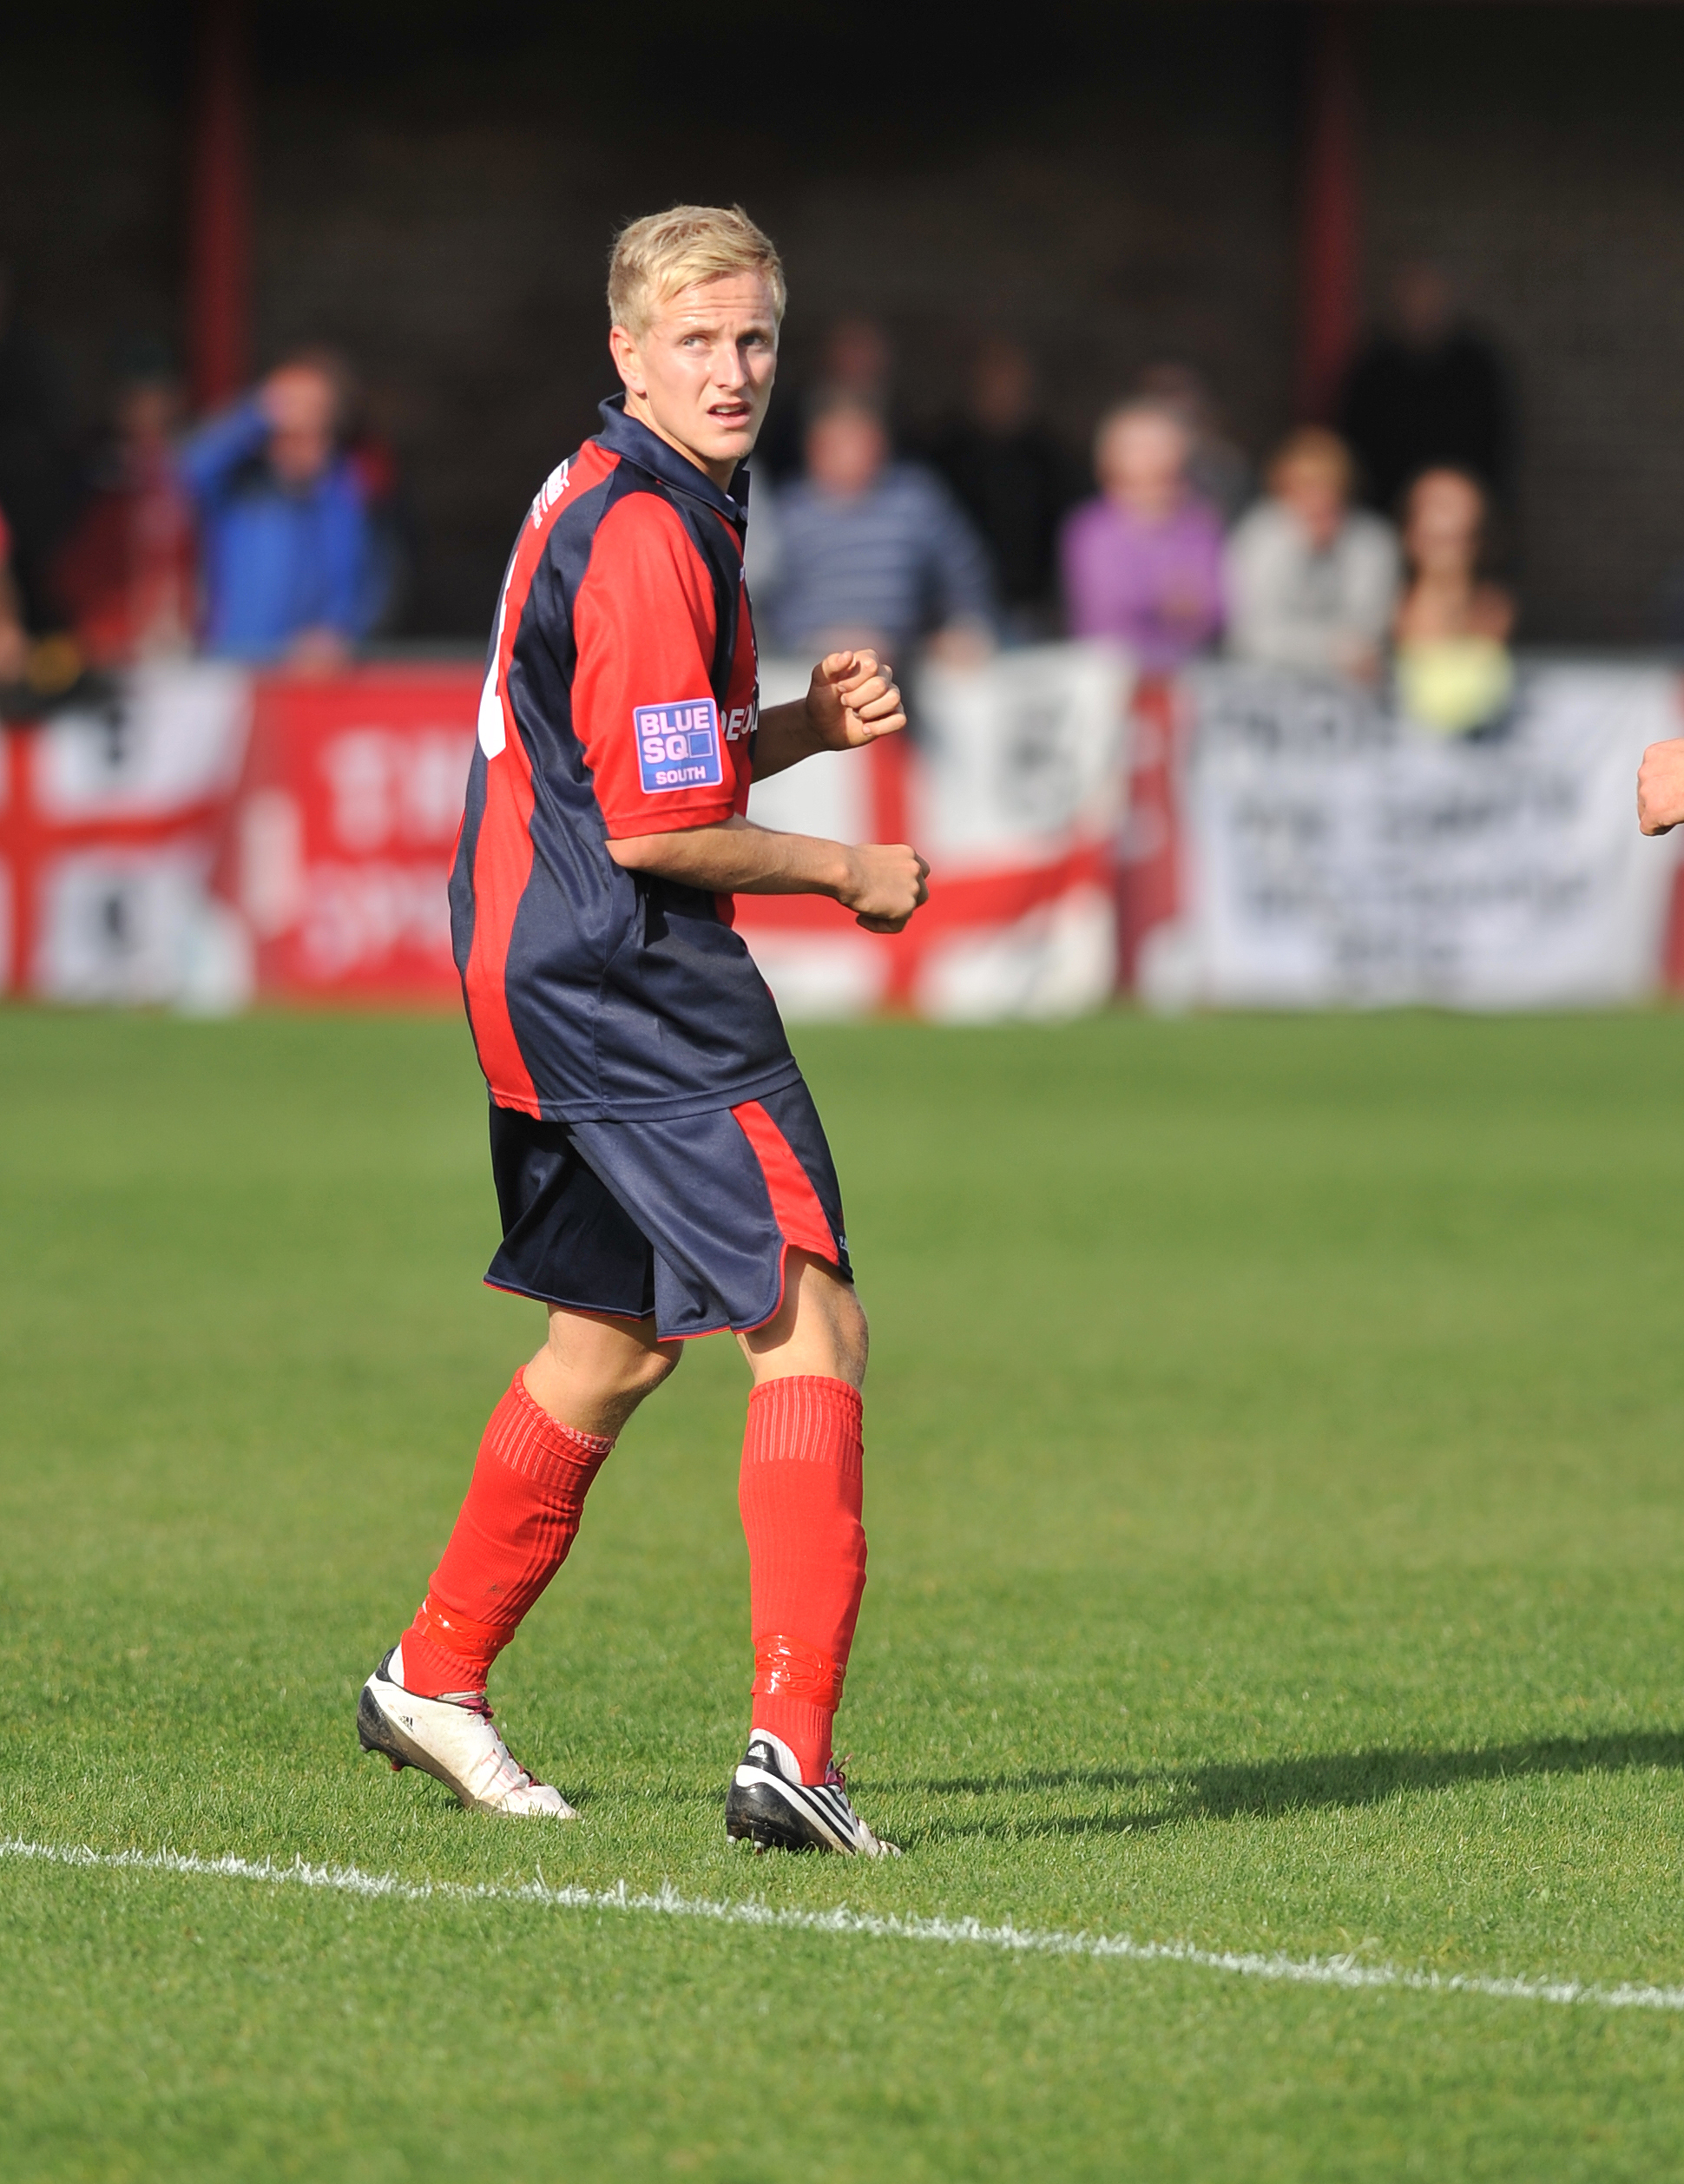 Simon Johnson has signed a new deal at Eastbourne Borough